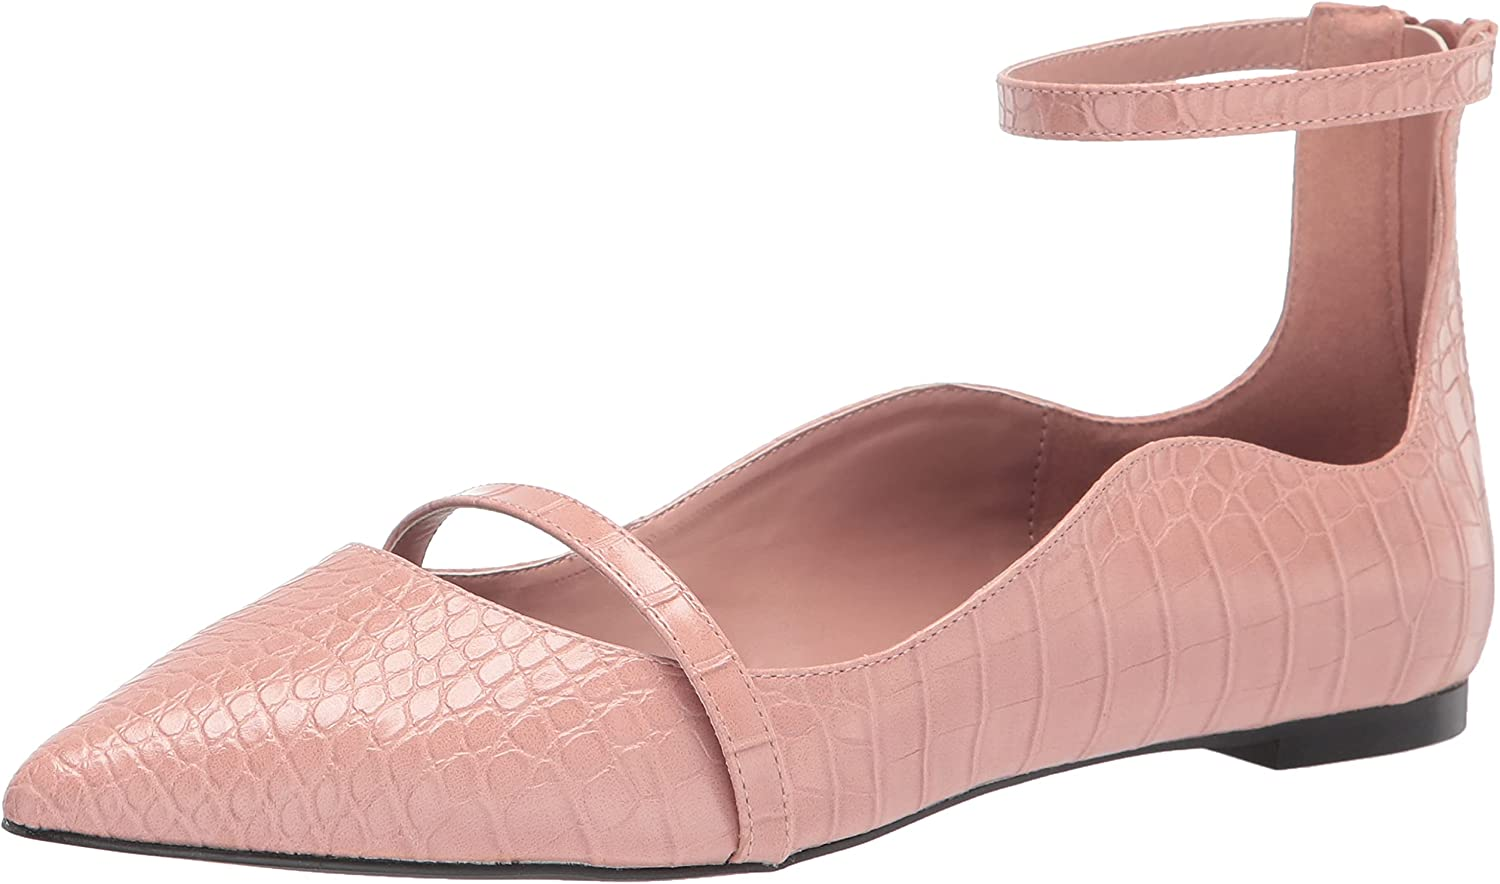 Rampage Women's Blakely NEW before selling ☆ Max 79% OFF Ballet Flat